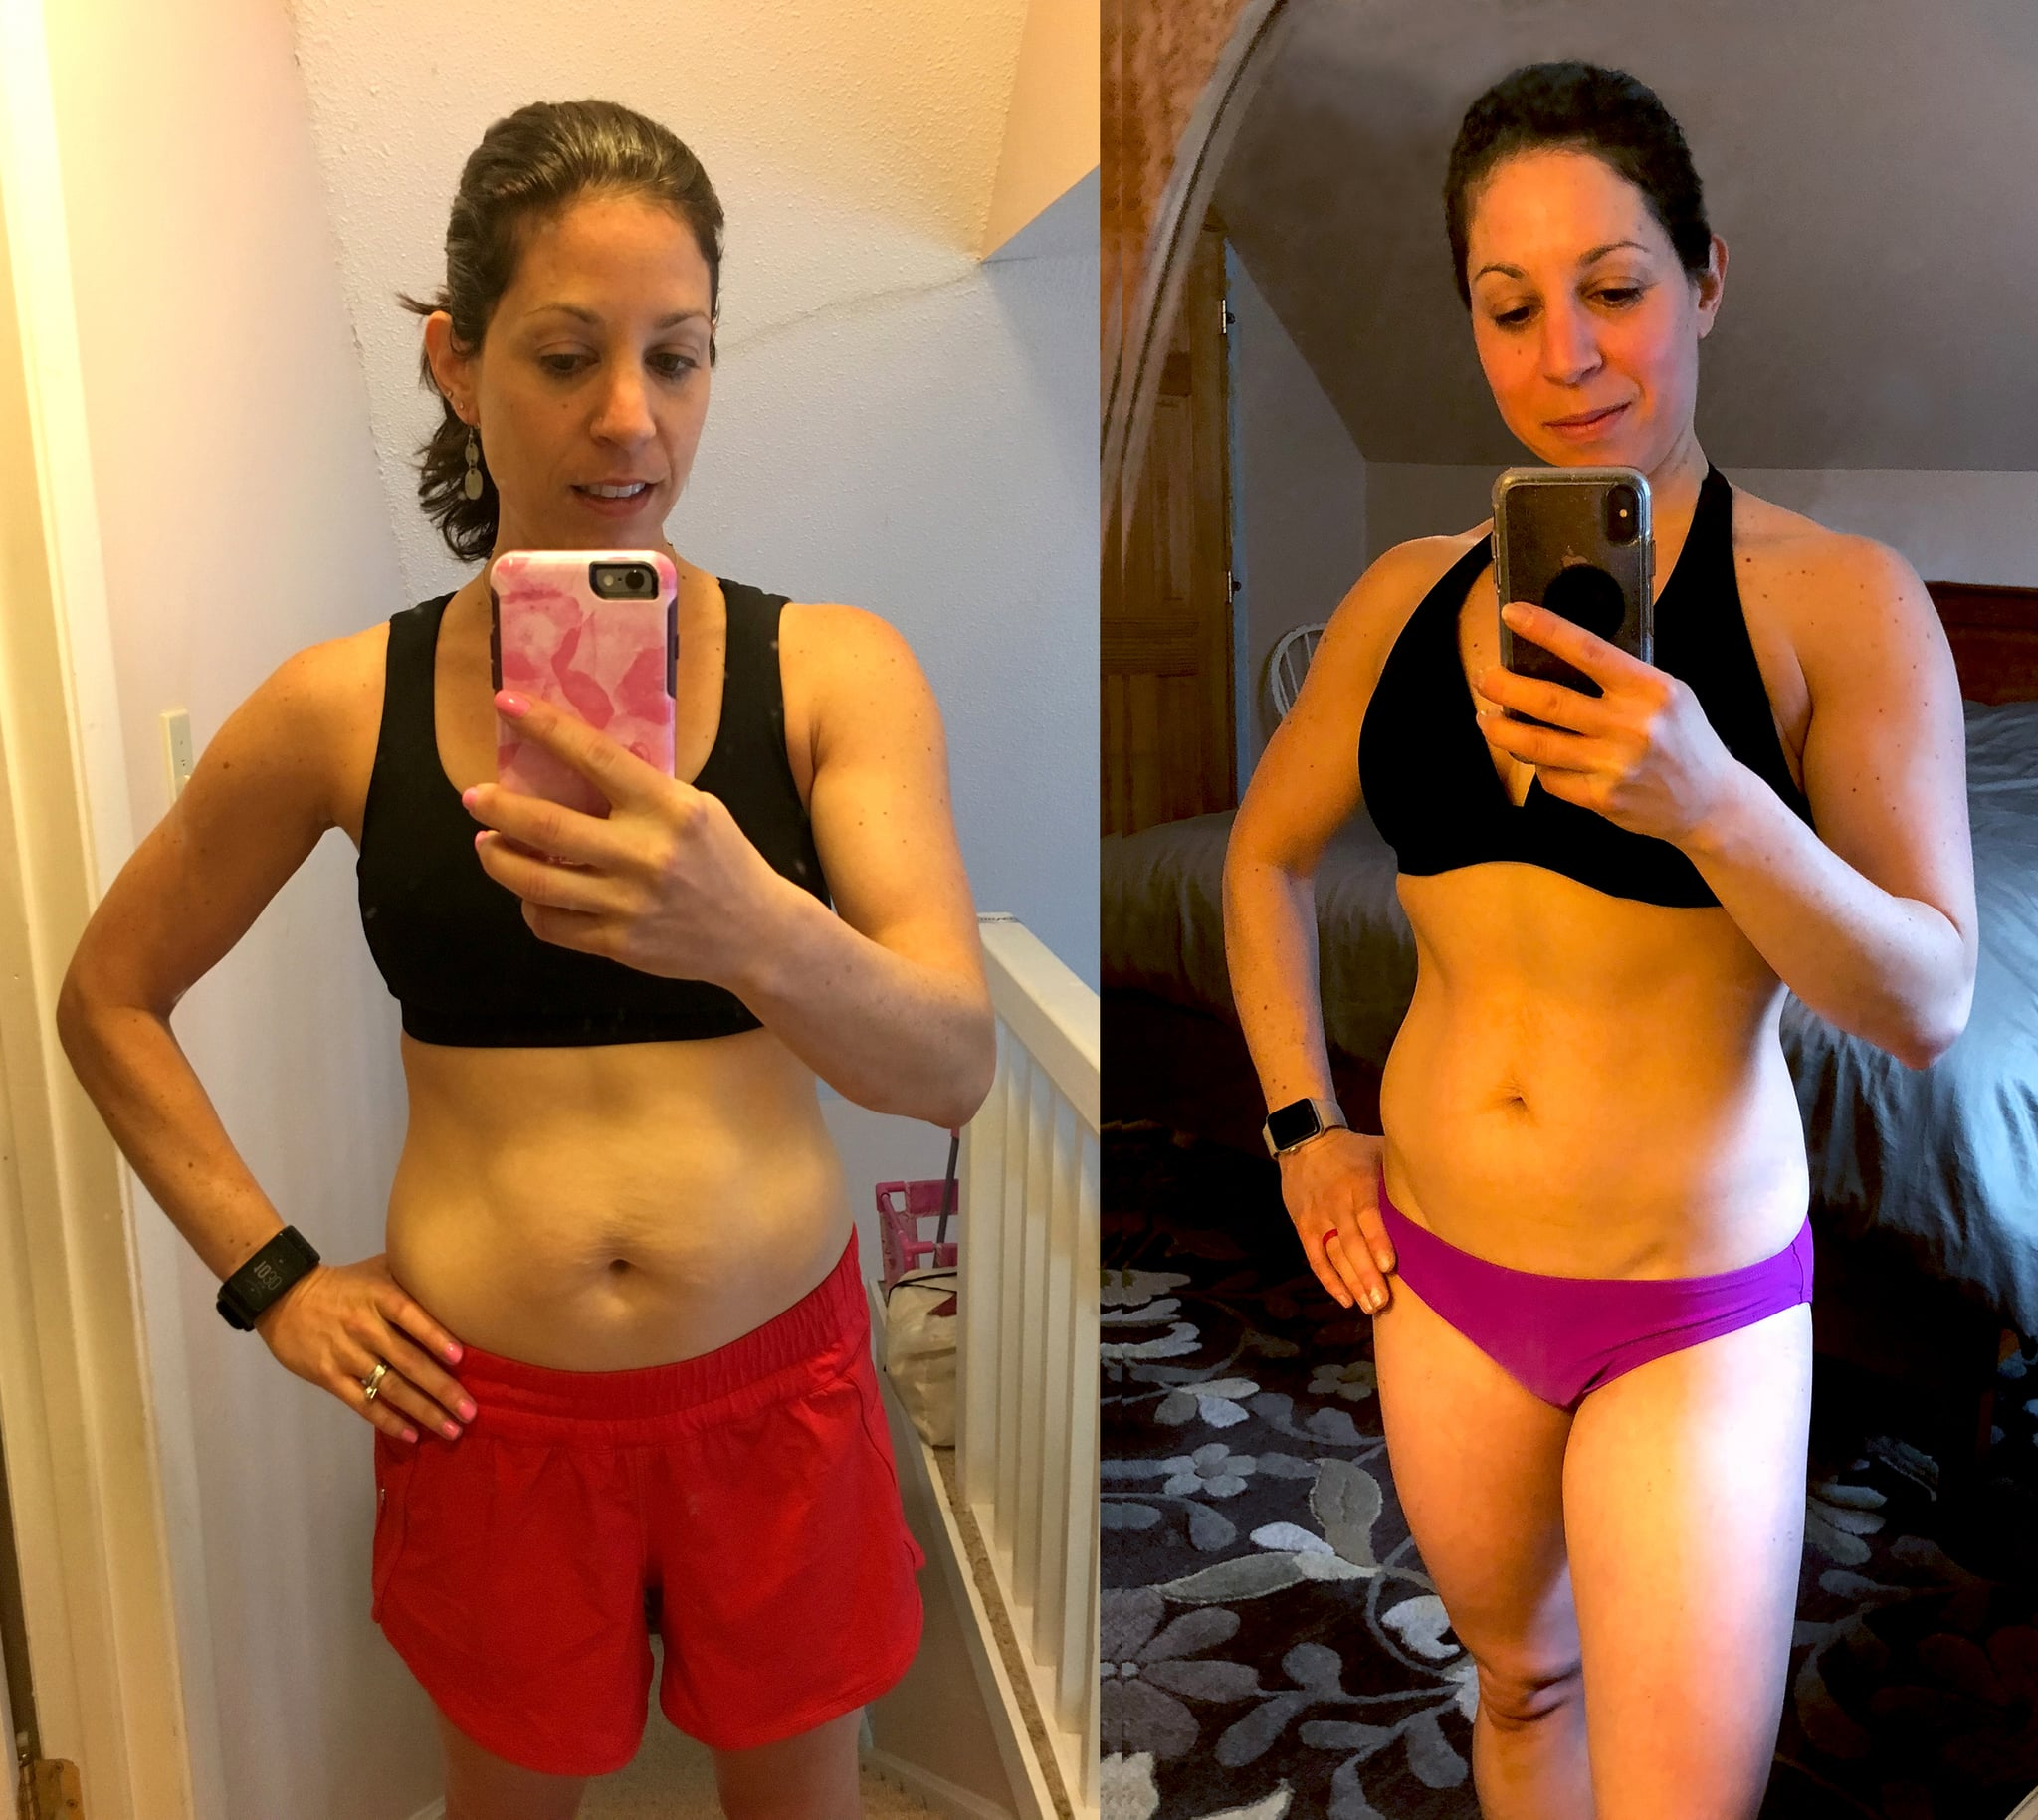 f73b436380e2c ... belly and have always felt self-conscious. I exercise regularly and eat  healthy